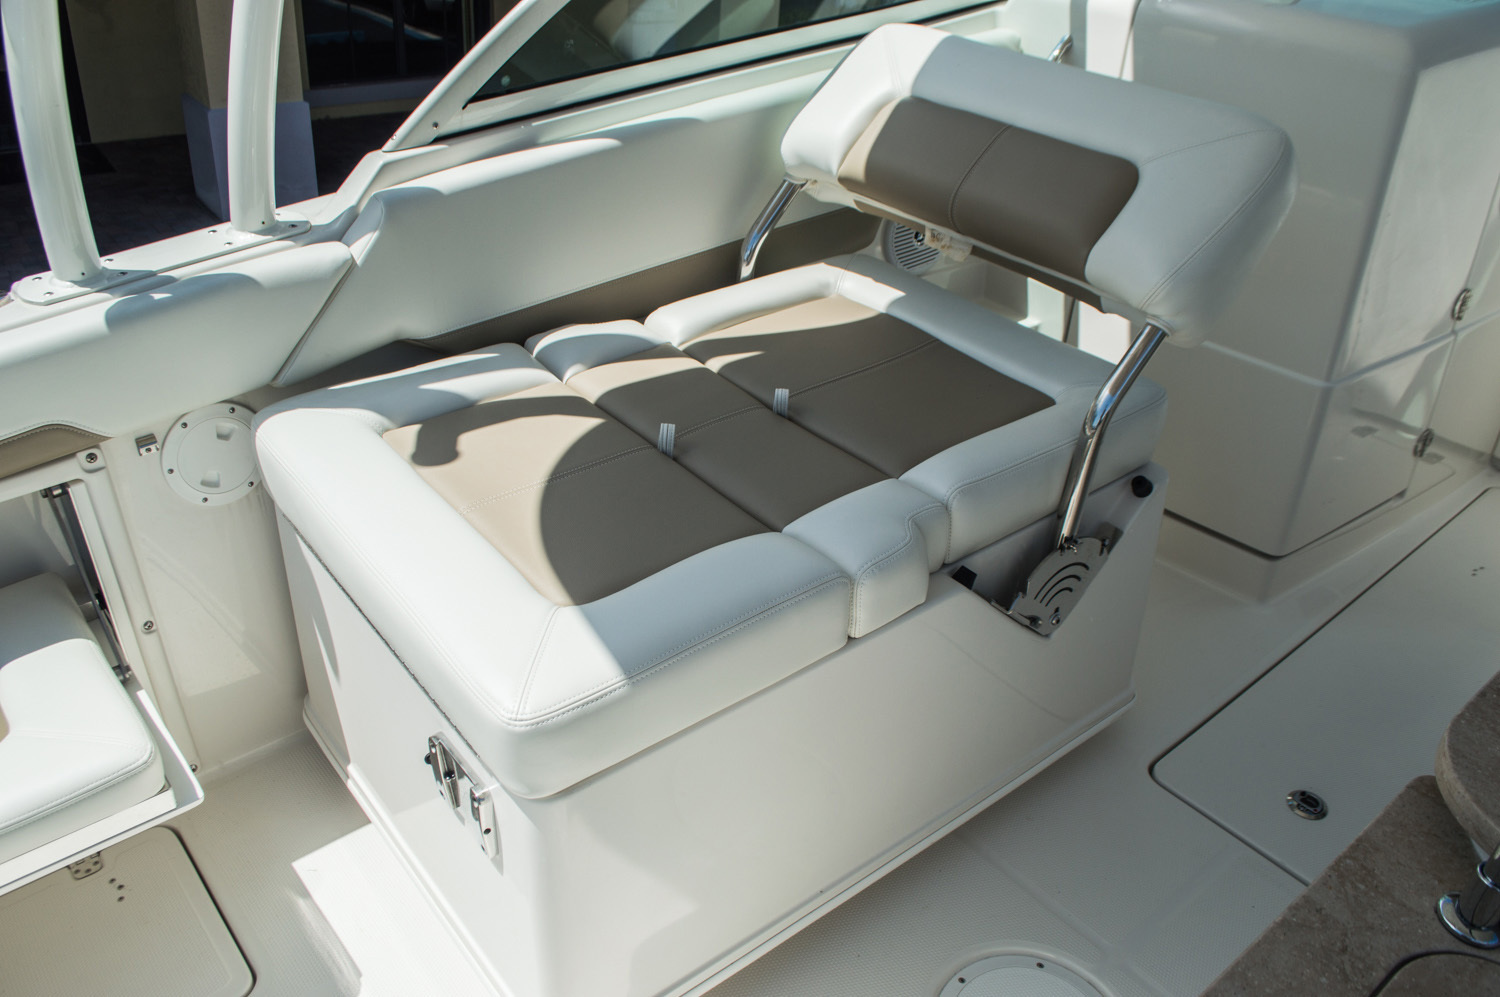 Thumbnail 42 for New 2016 Sailfish 275 Dual Console boat for sale in West Palm Beach, FL